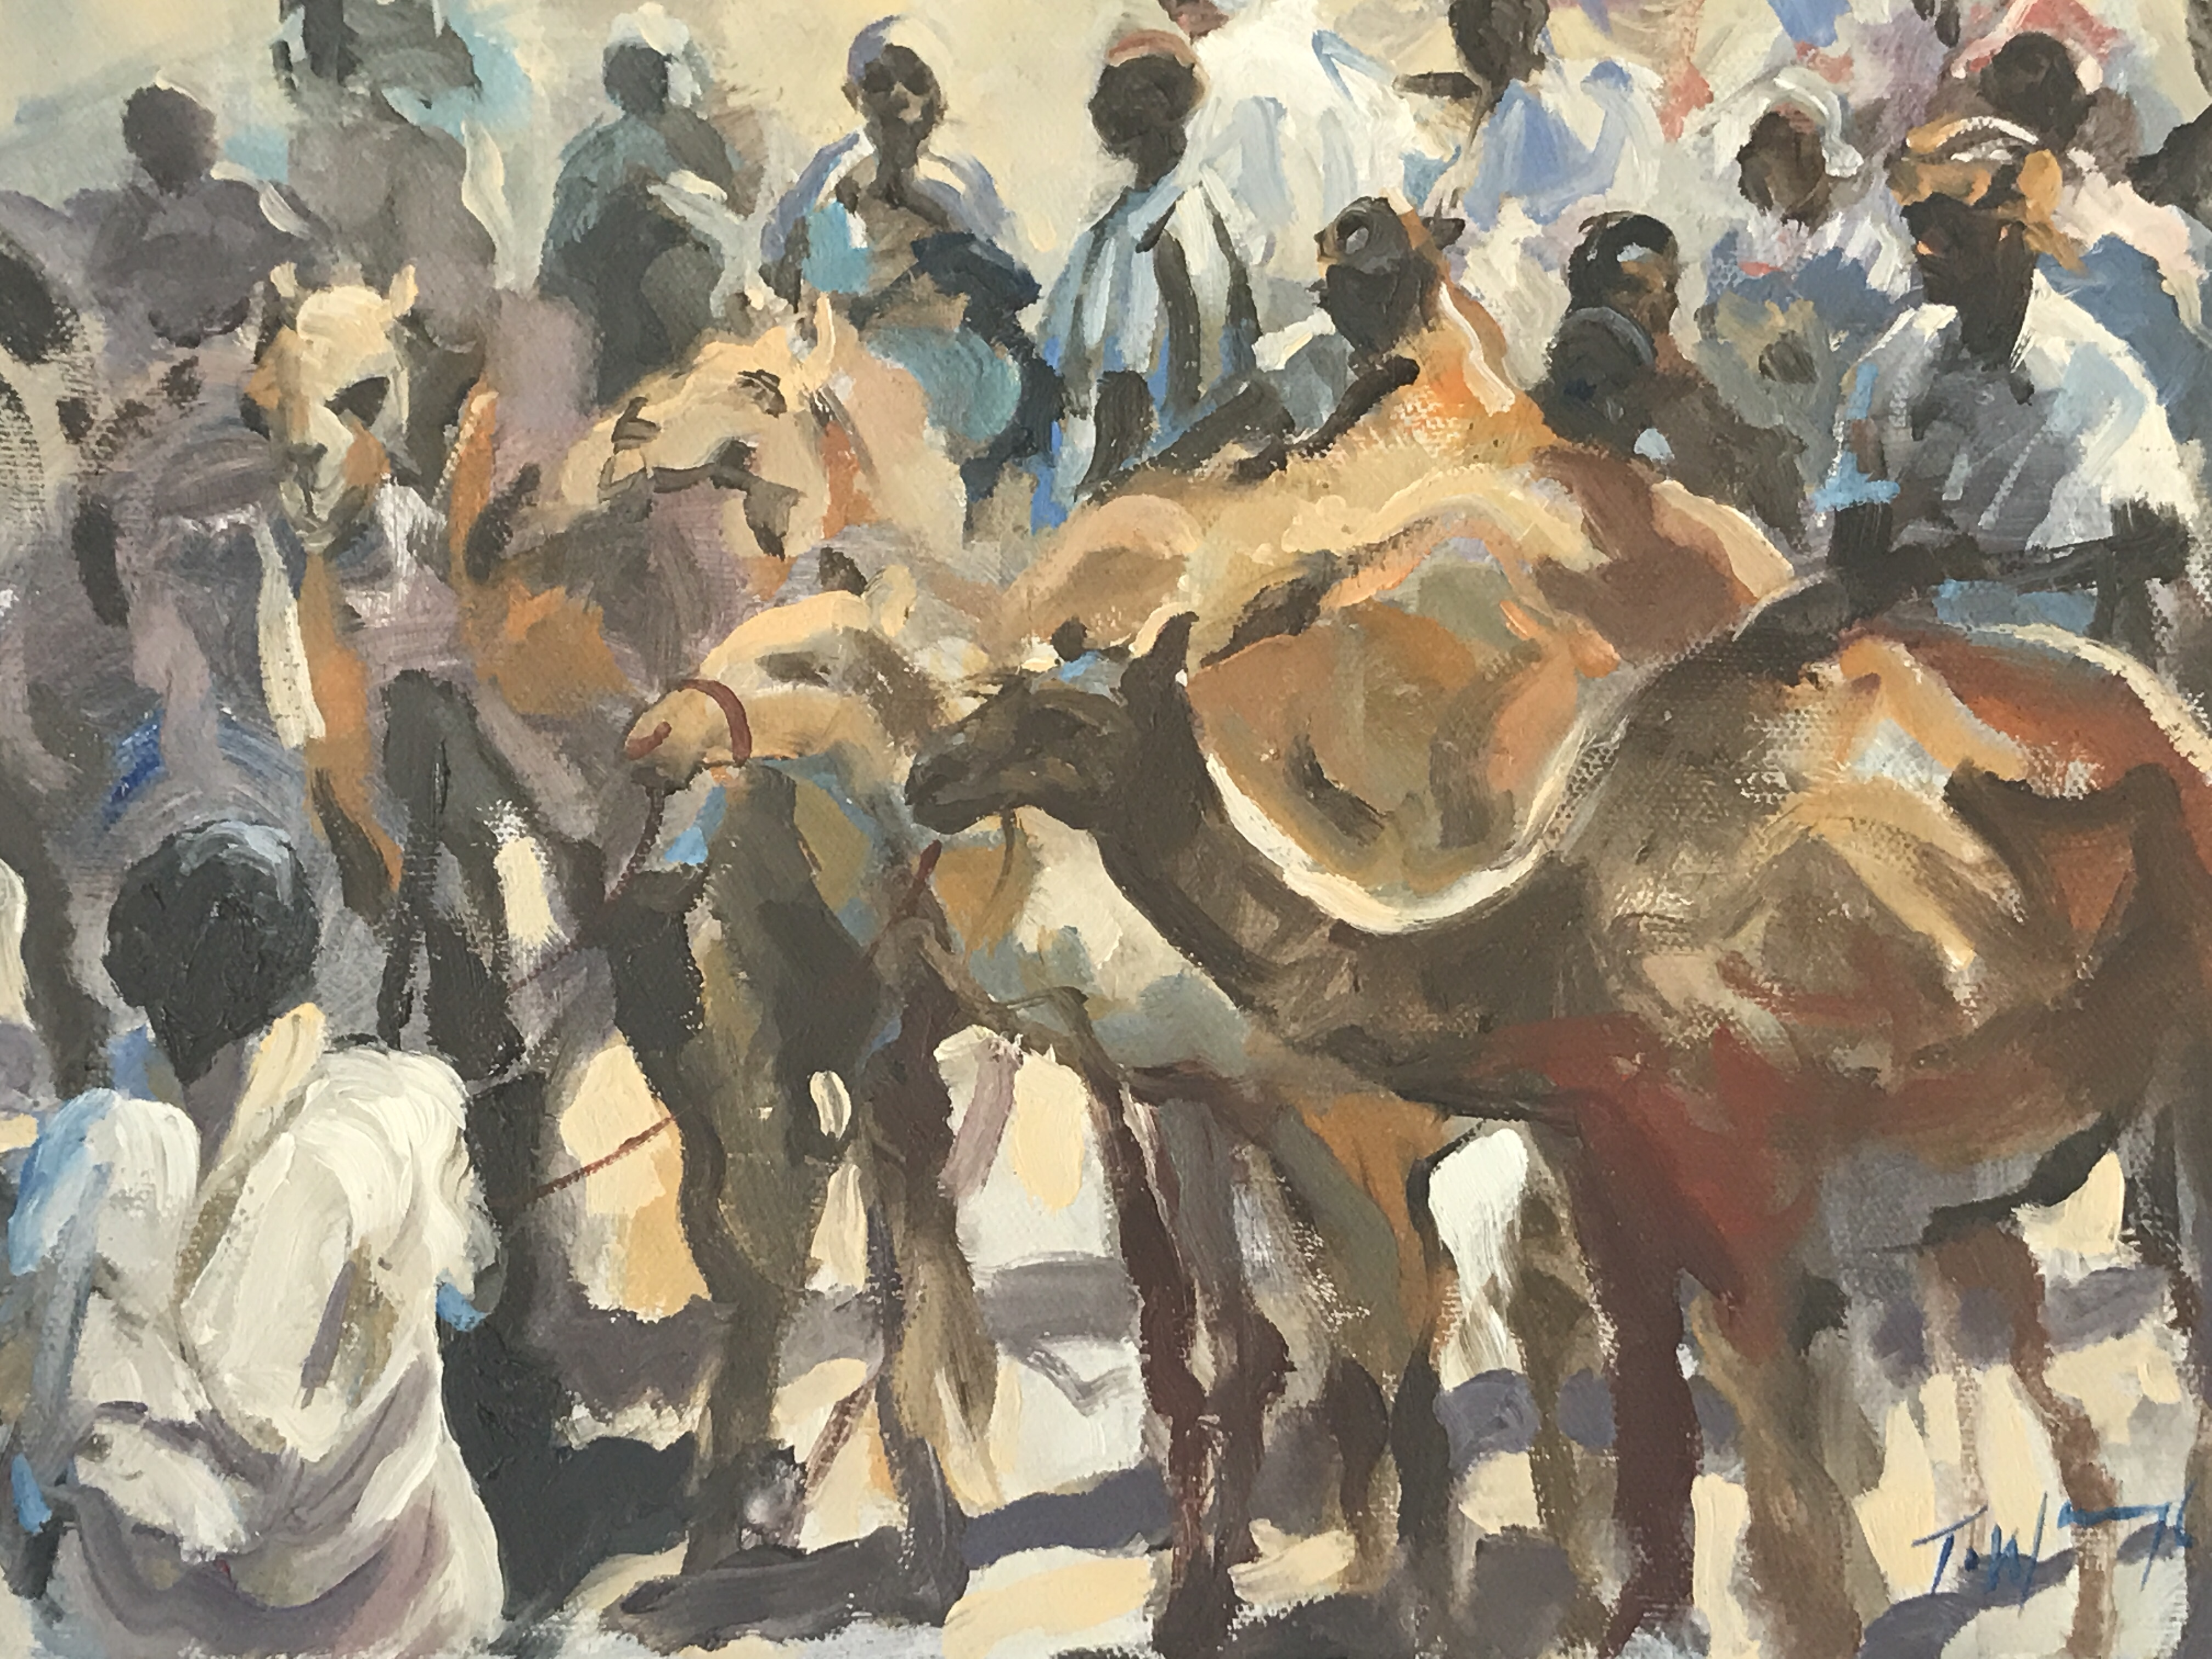 Trevor Waugh, Market in Morocco, is an original oil painting depicting a busy moroccan market place.